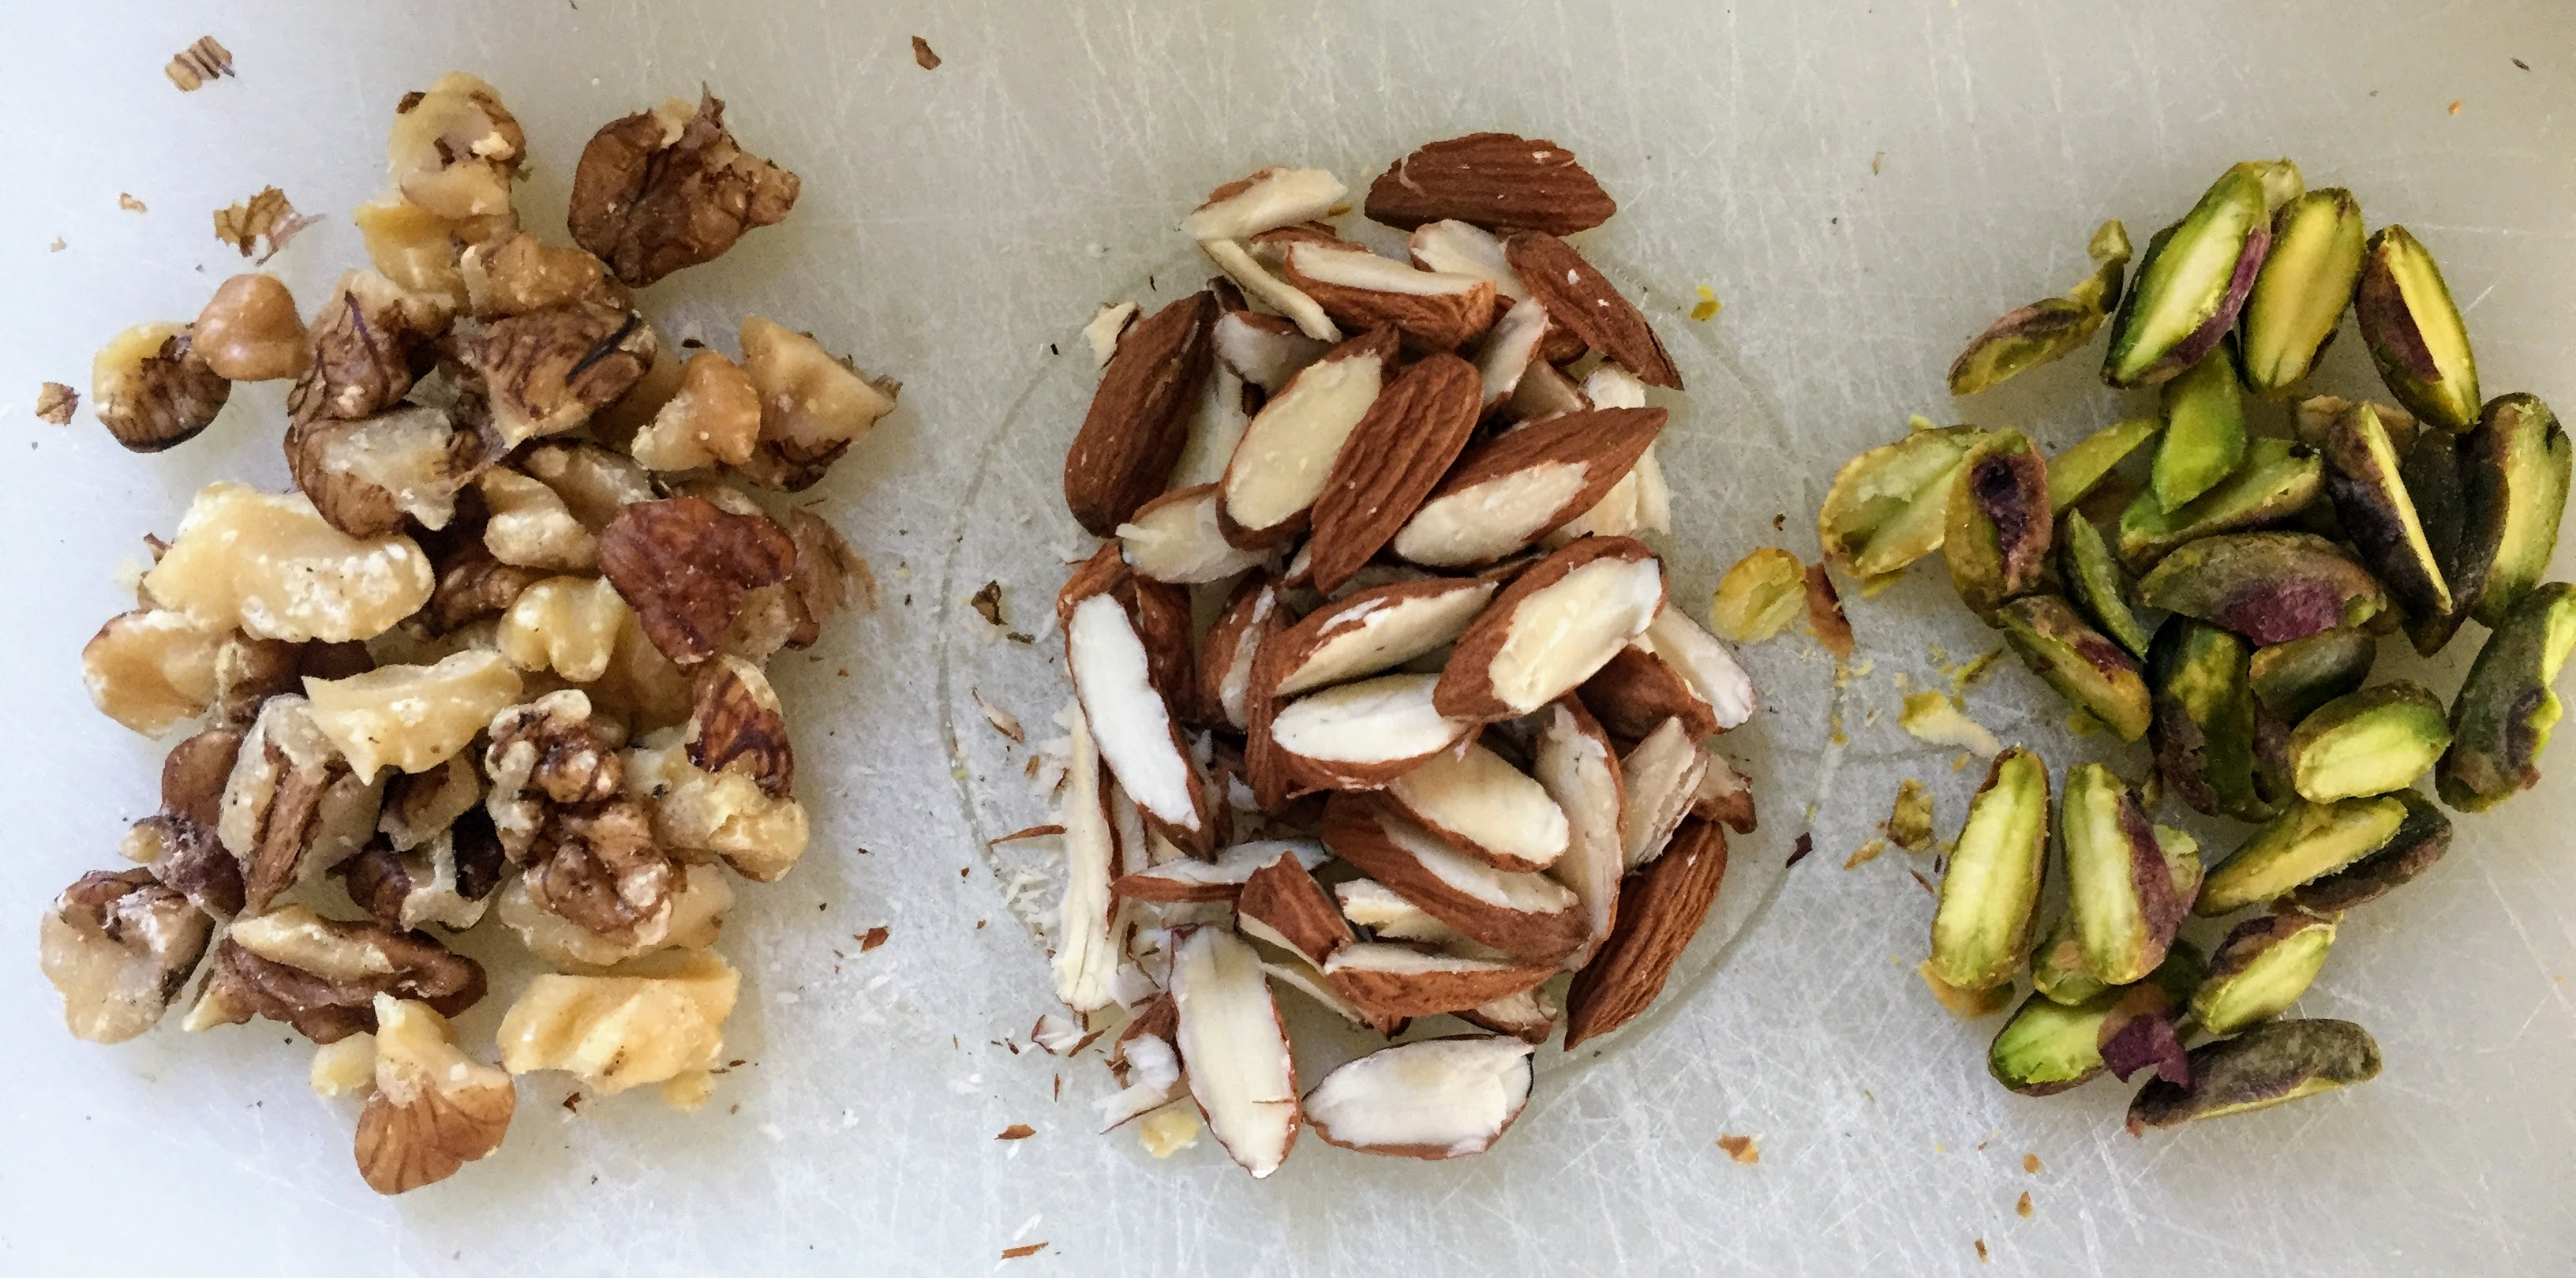 Three small piles of chopped walnuts, slivered almonds, and halved pistachios.